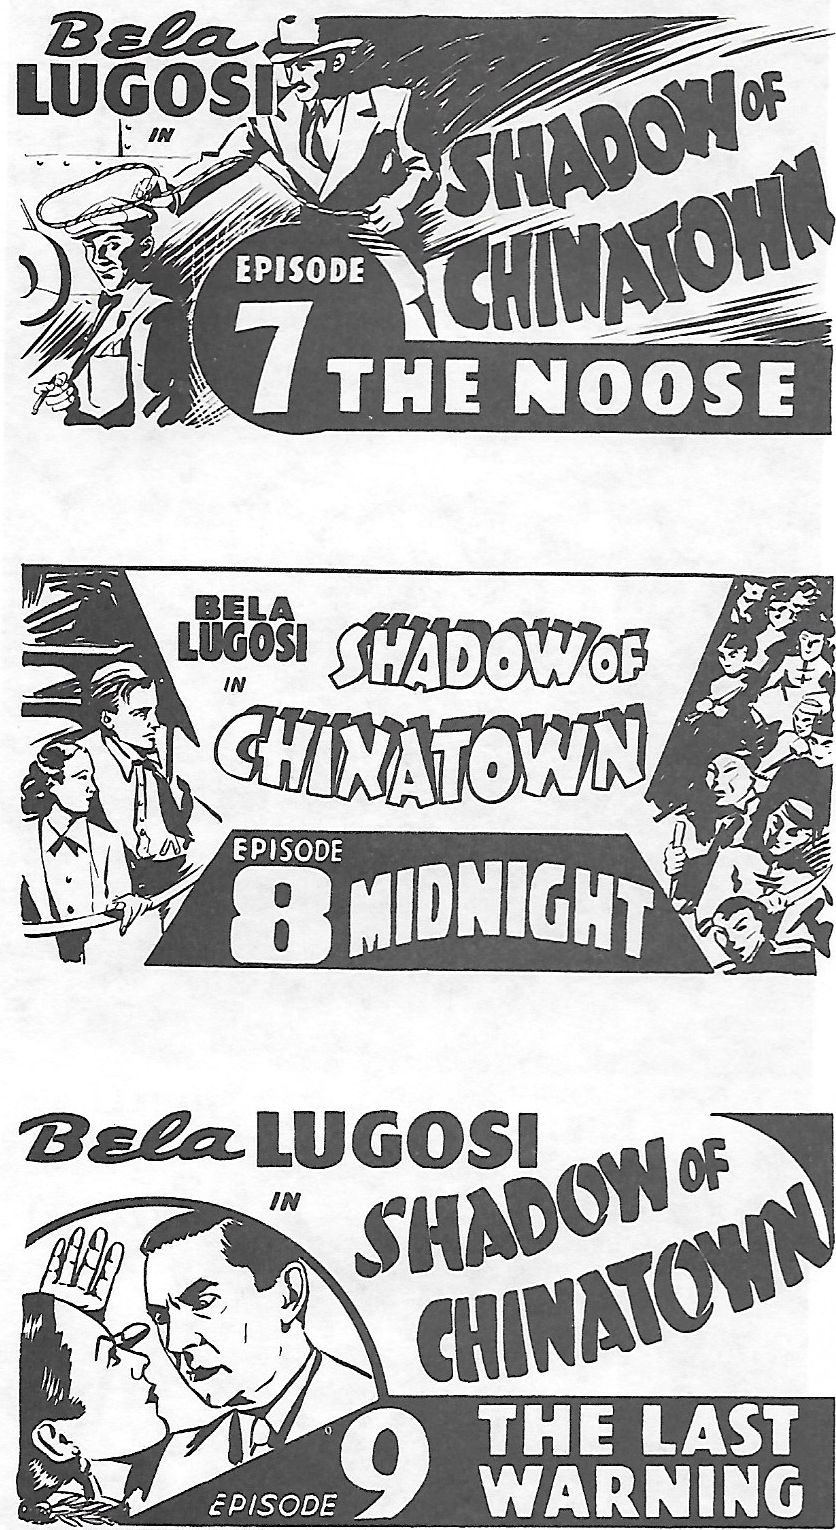 Bela Lugosi and Joan Barclay in Shadow of Chinatown (1936)